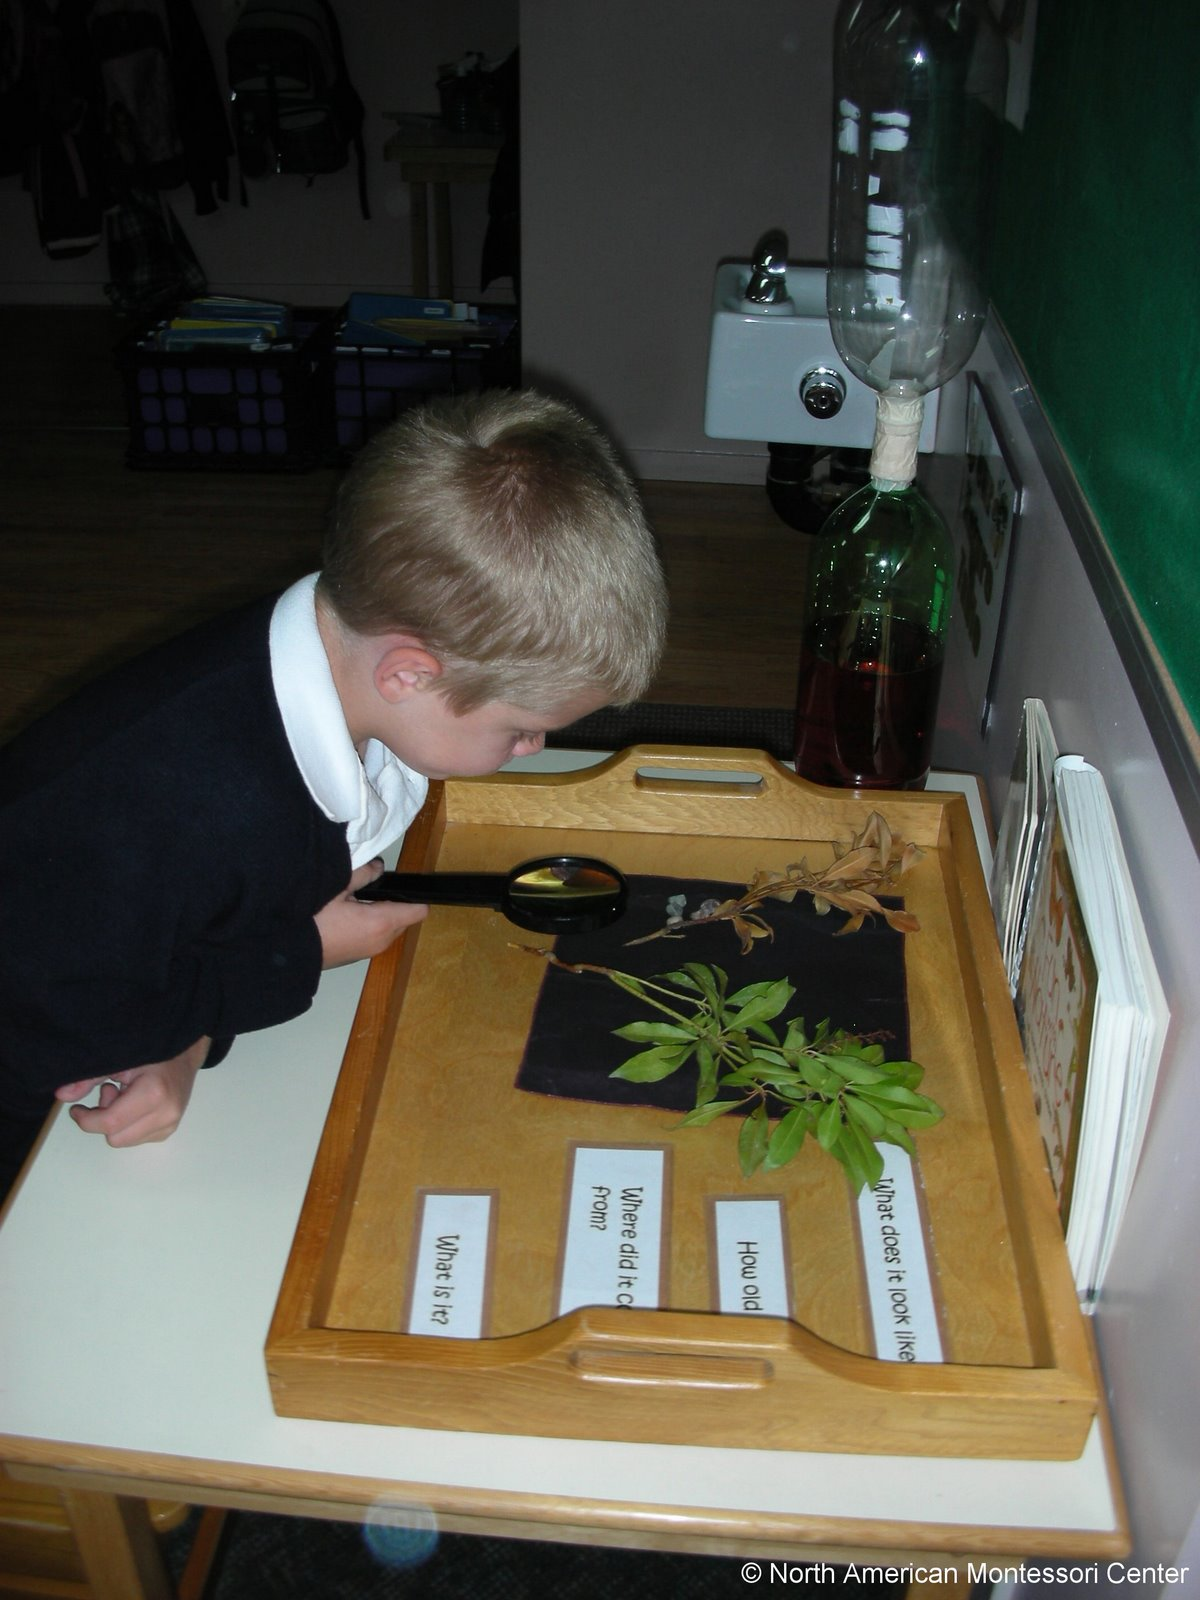 student achievement NAMC montessori classroom grading boy with plants